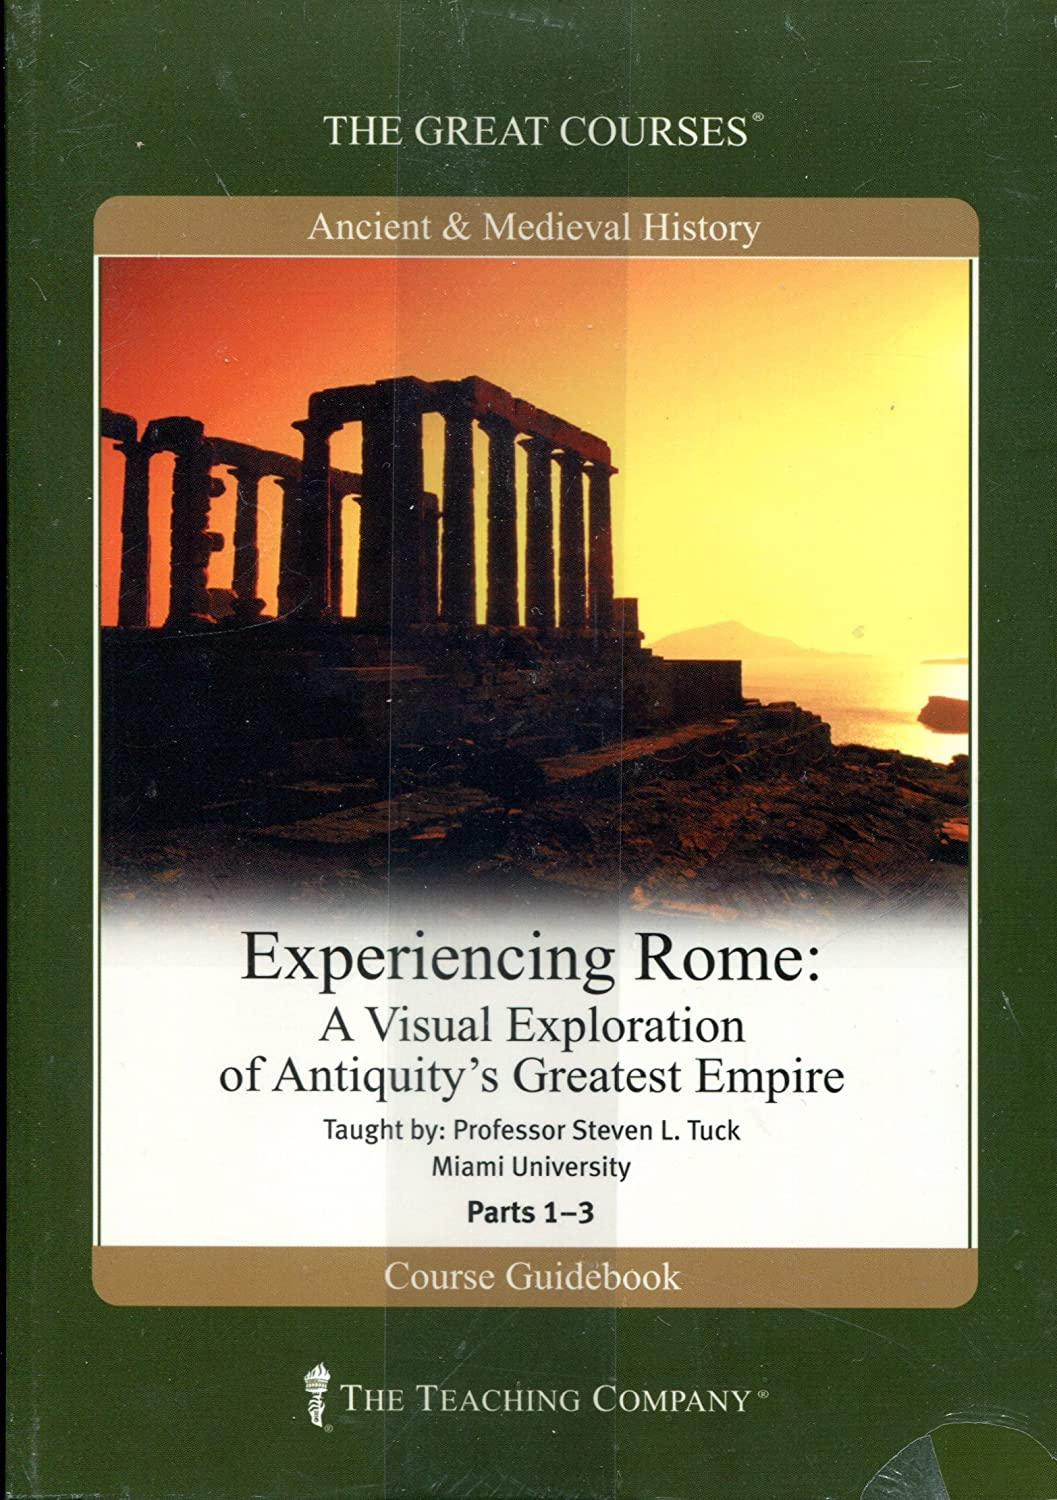 Image result for The Great Courses Experiencing Rome